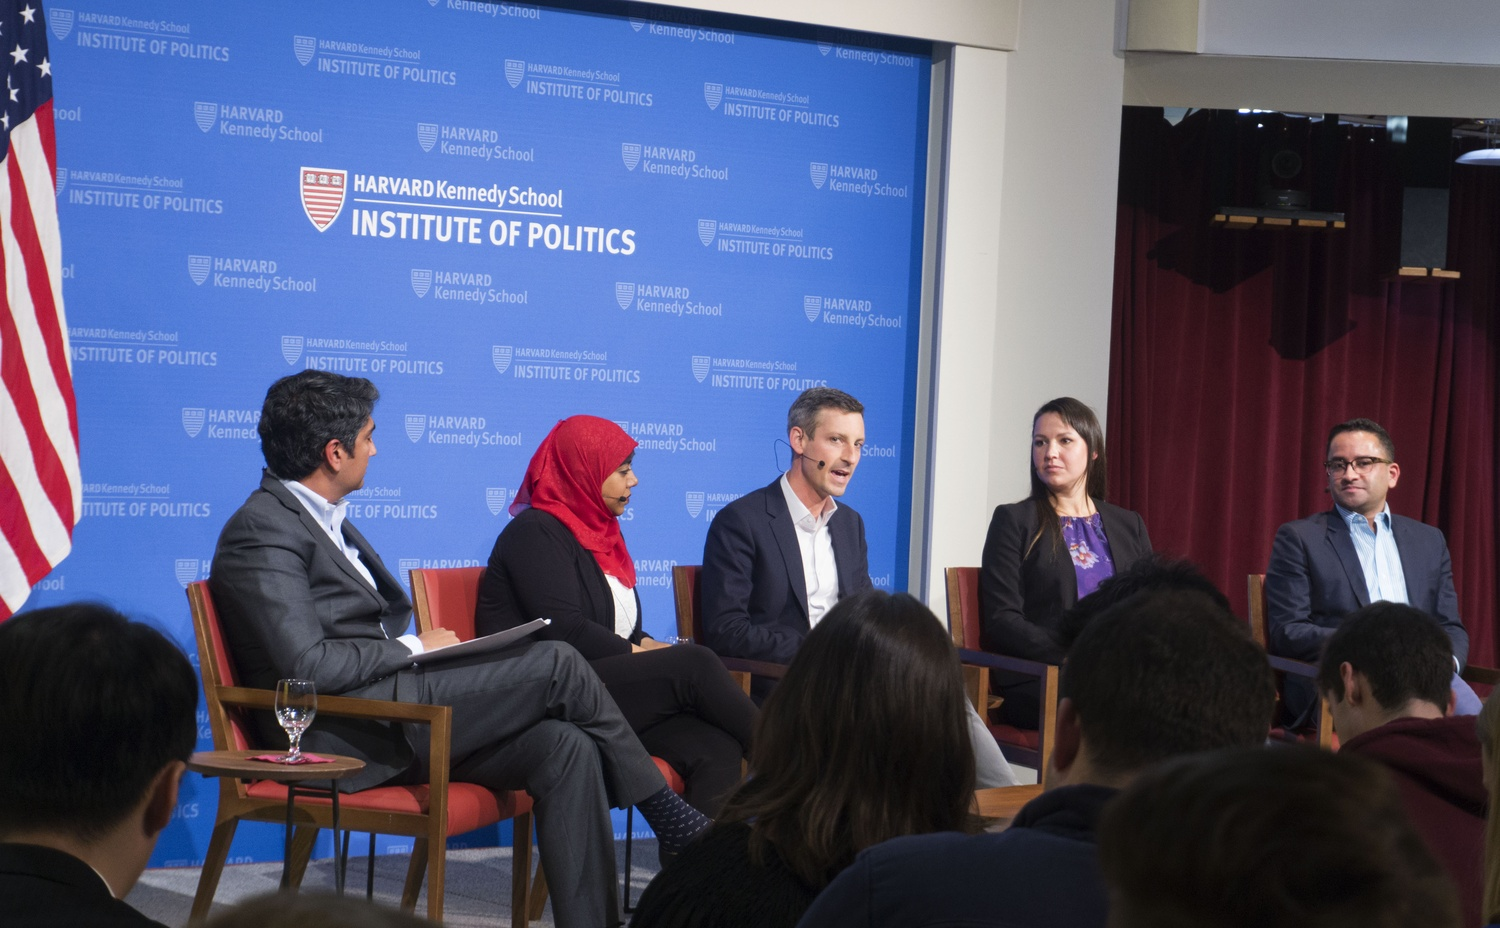 Former West Wing staffers talked about their personal experiences serving in the Obama administration at the Institute of Politics on Monday evening.